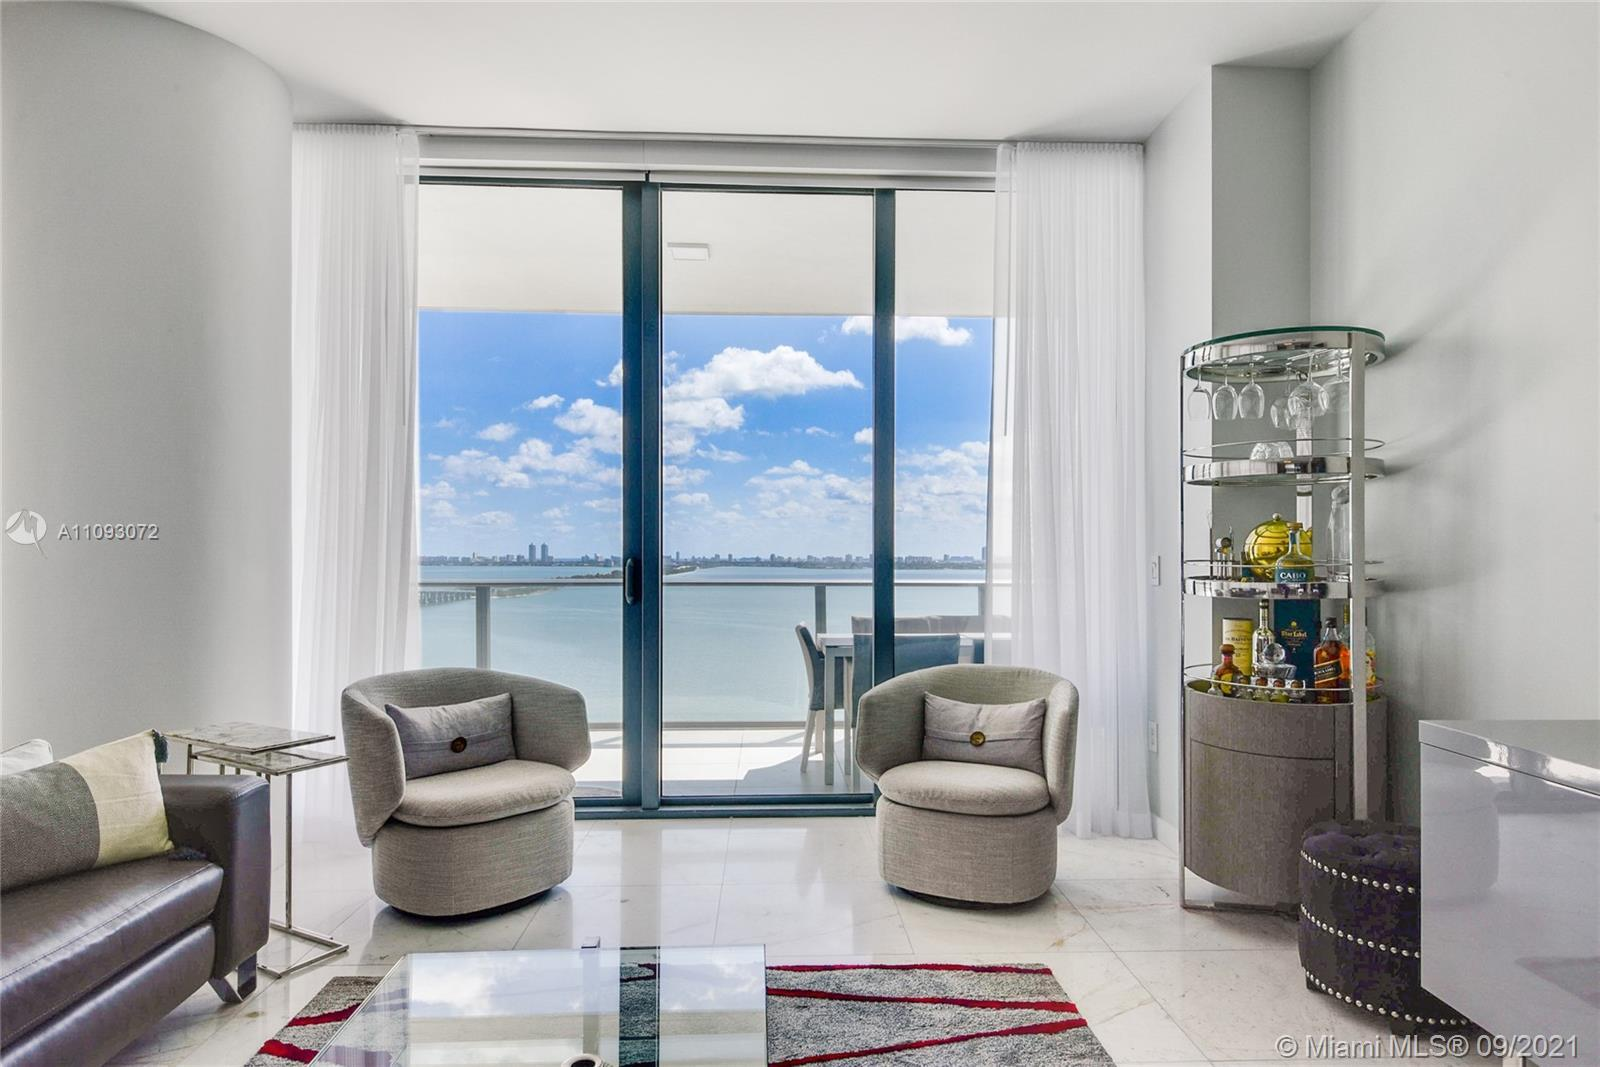 JUST LISTED ! In the heart of the Paraiso District. GranParaiso Unit 1907.  Impeccable North East Co